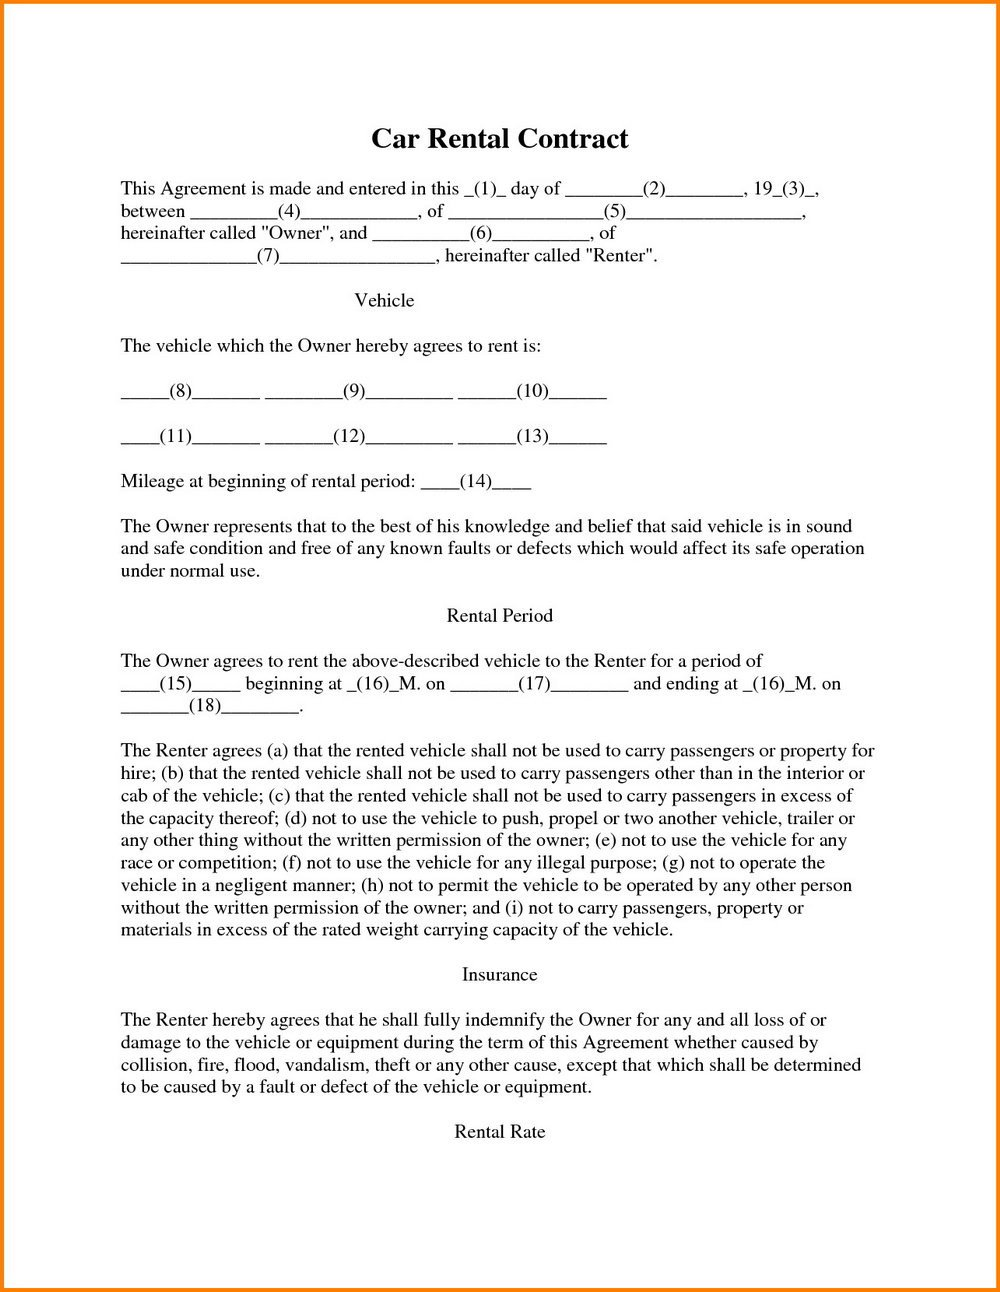 Db 300 form Nys Disability form Db120 1 forms 4451